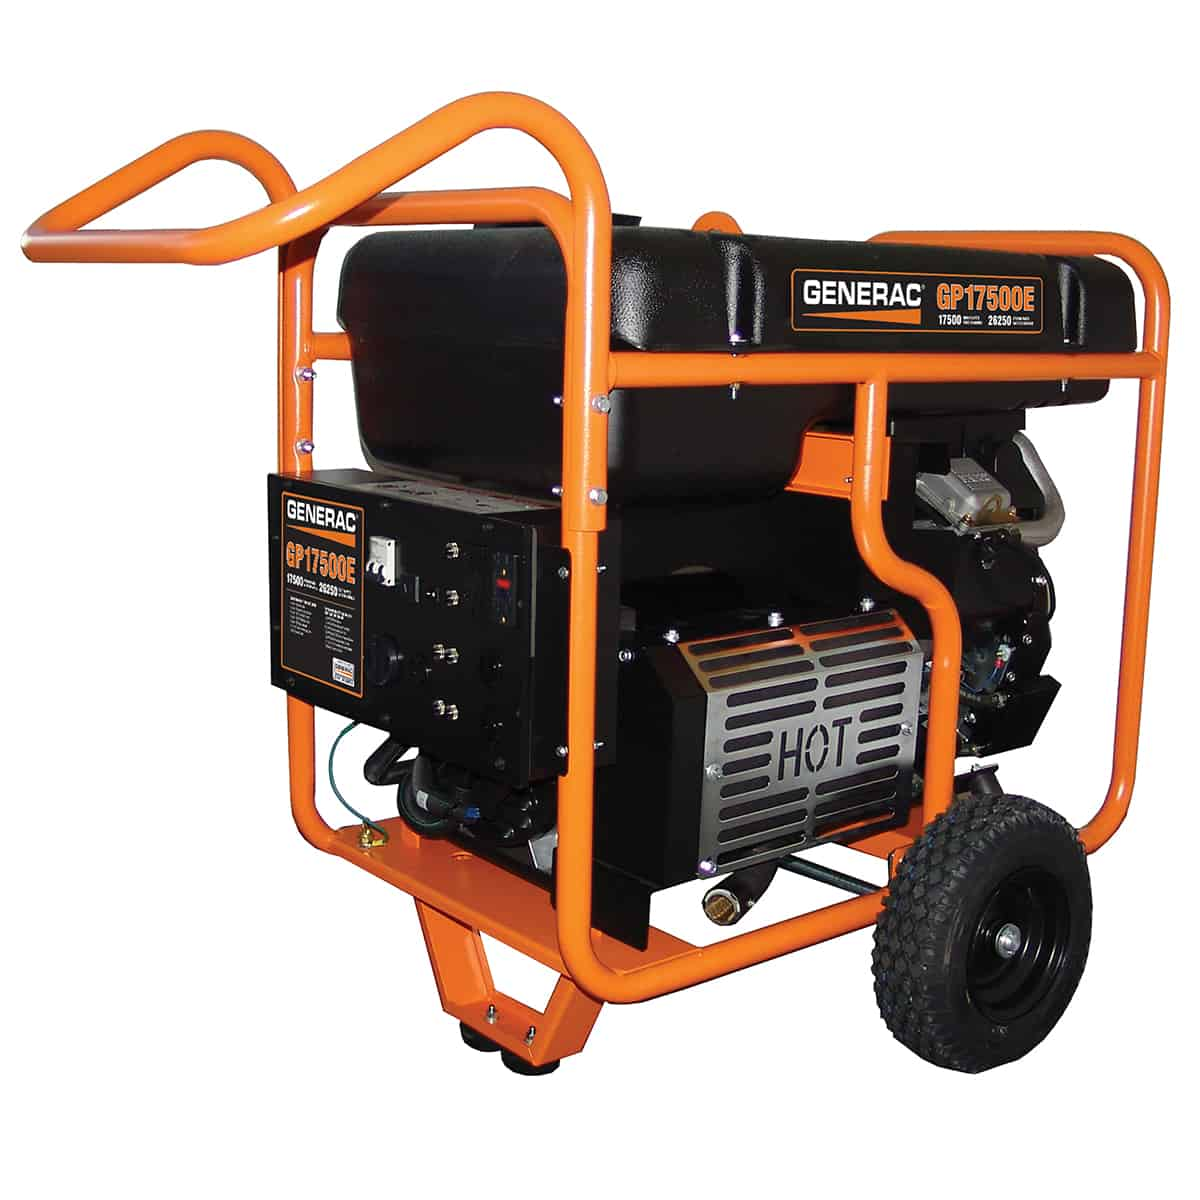 On The Job Power: Portable Generators for Commercial Use